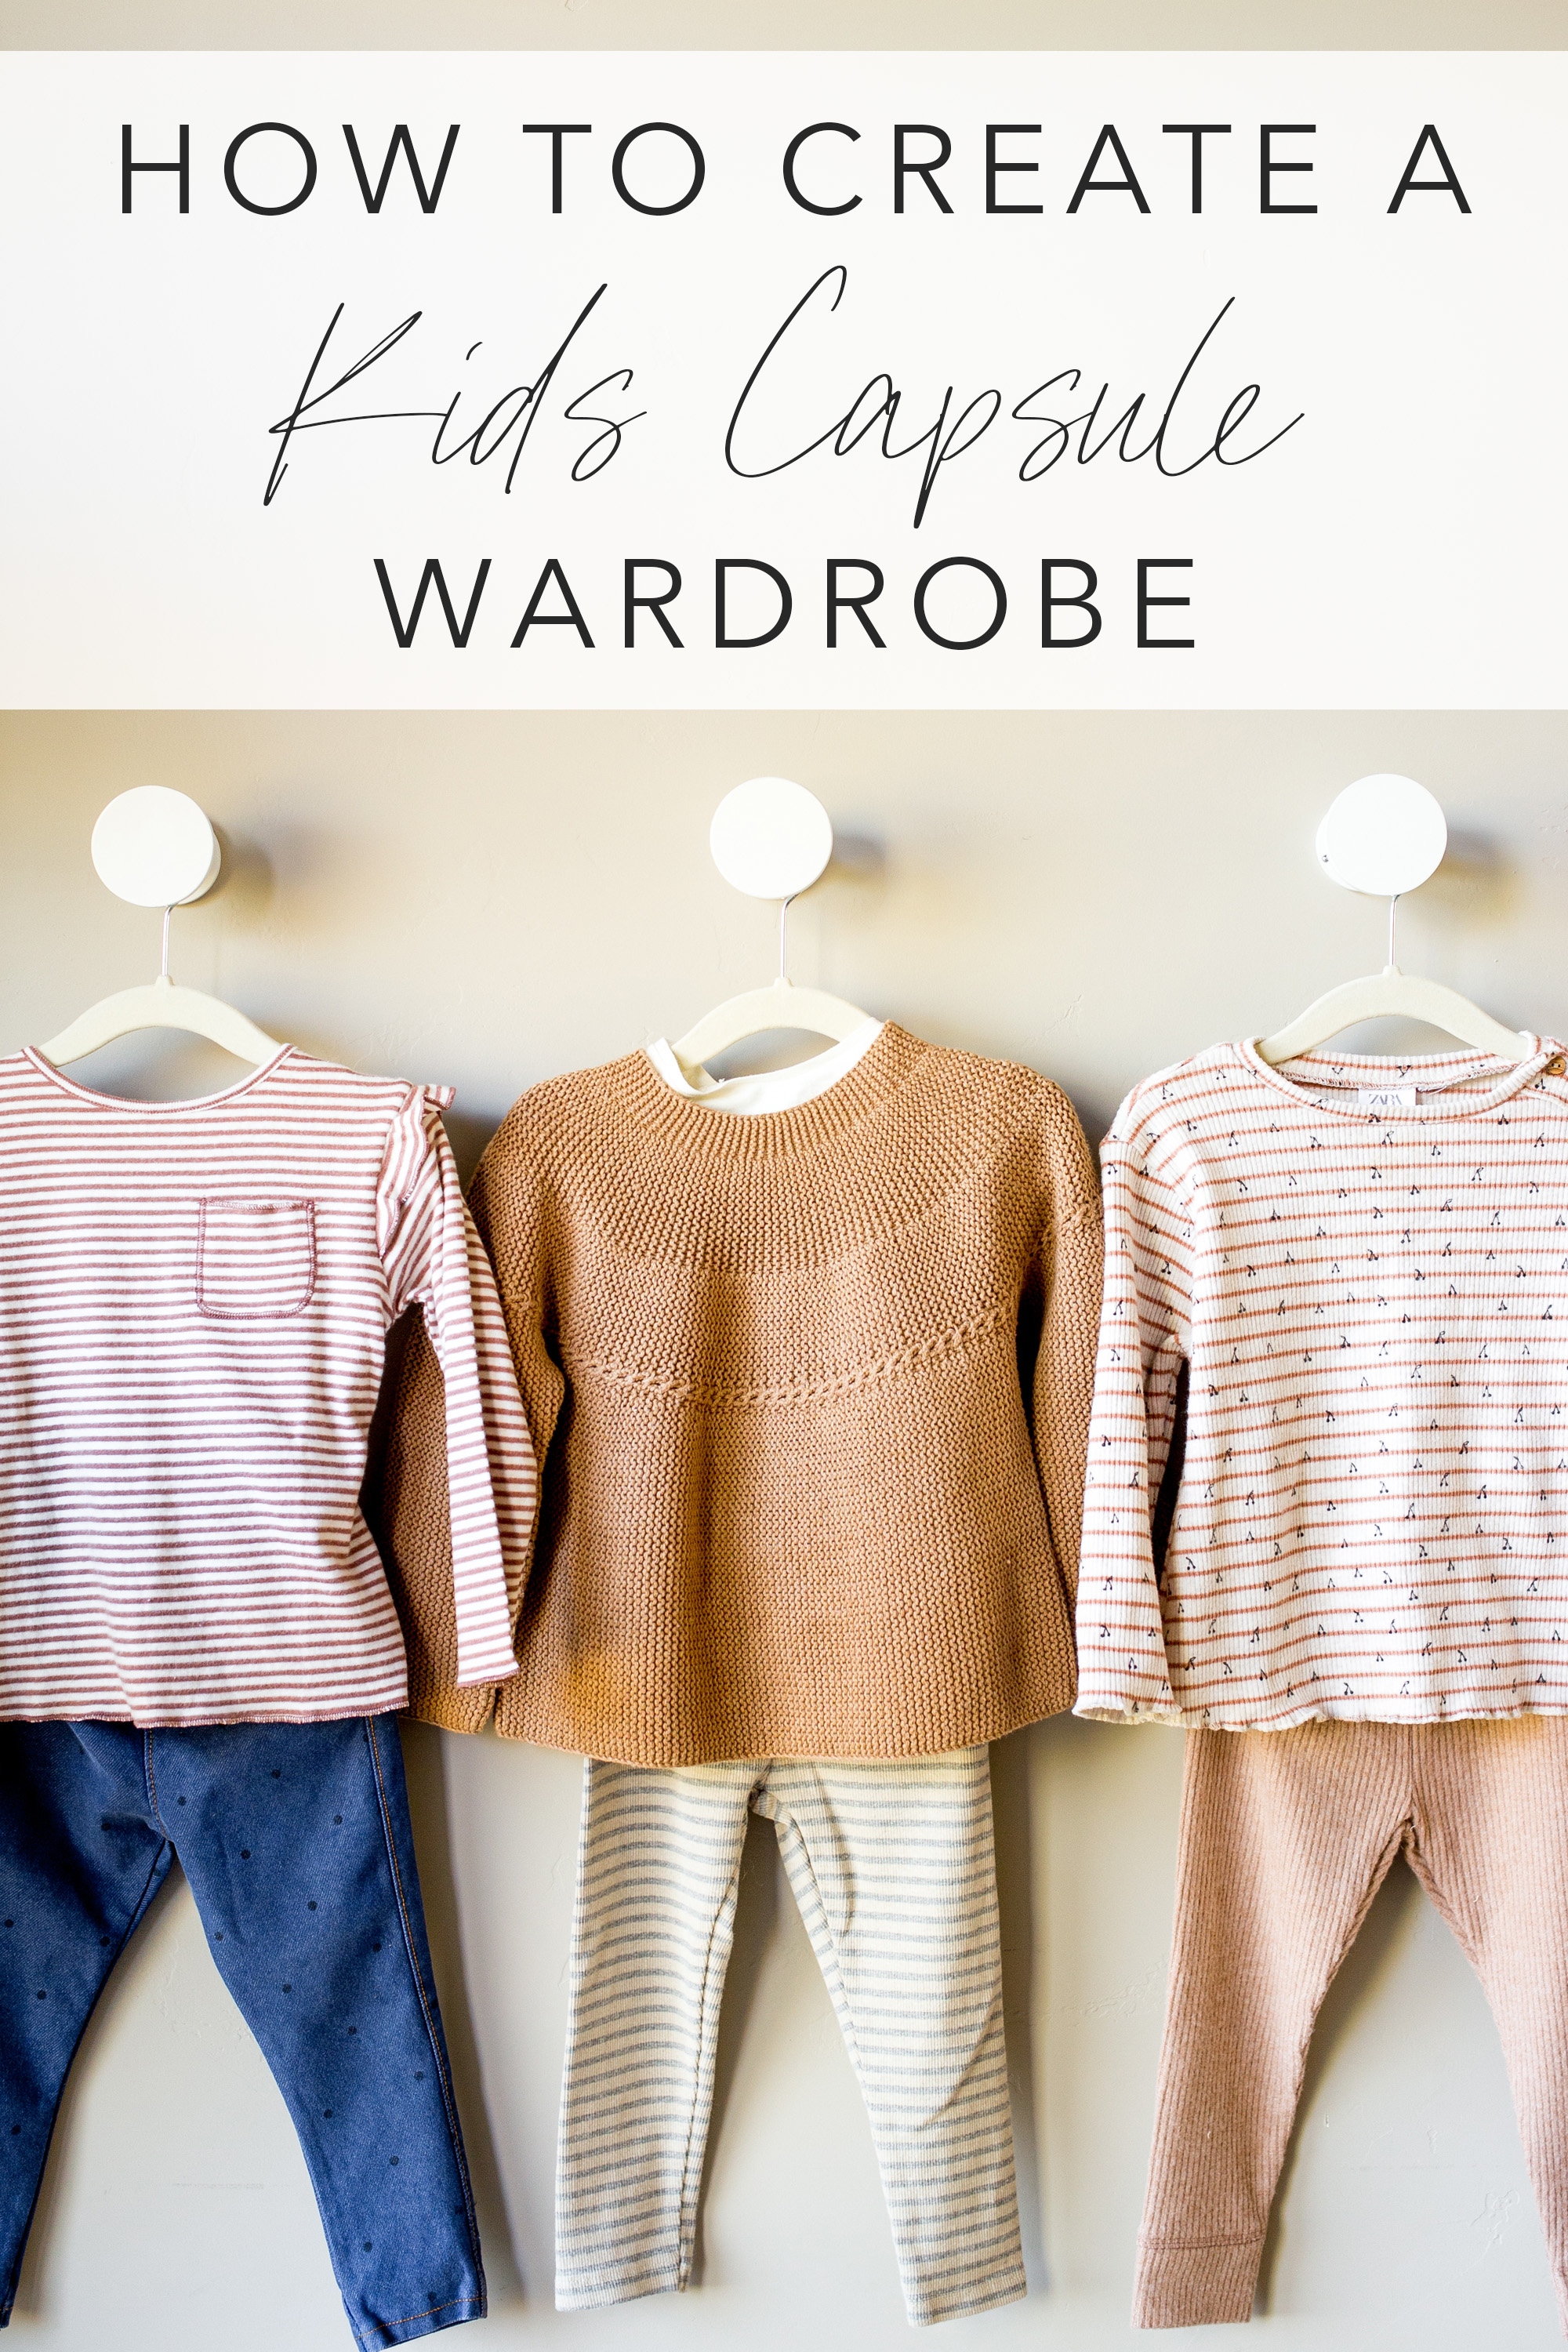 kids girls capsule wardrobe 3 outfits on hangers with text overlay